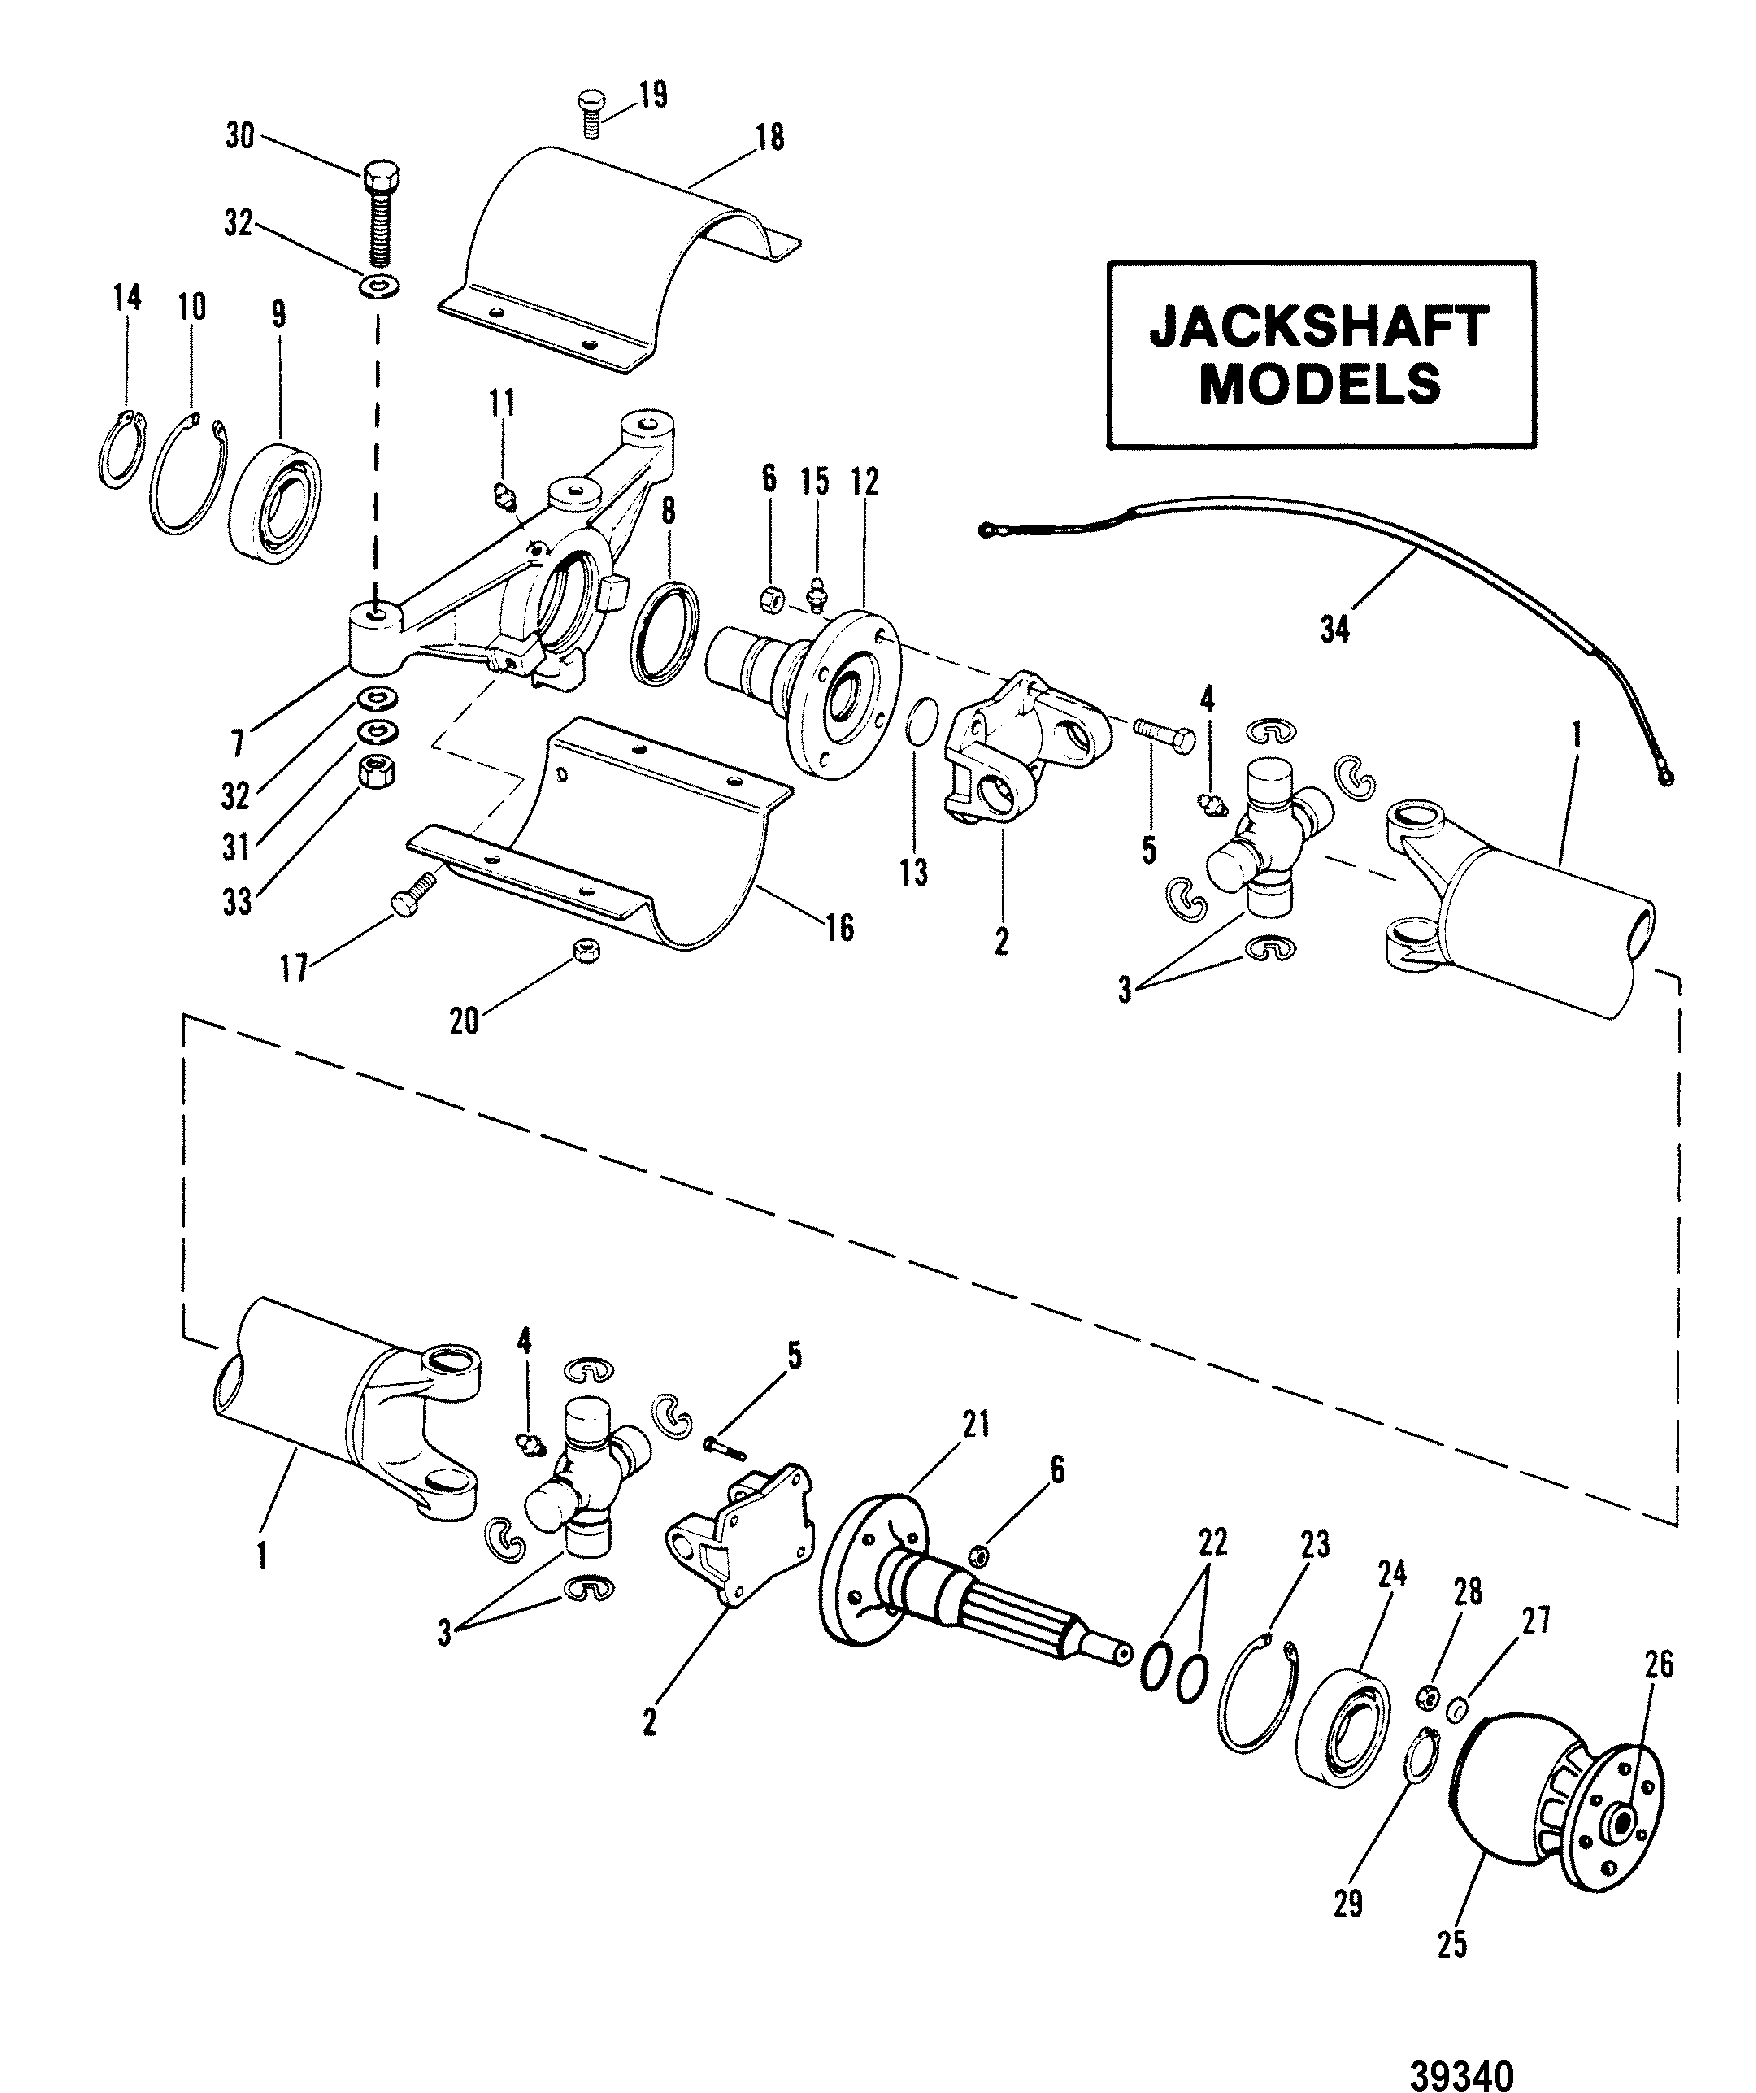 170 Mercruiser Engine Wiring Diagram Mercruiser 170